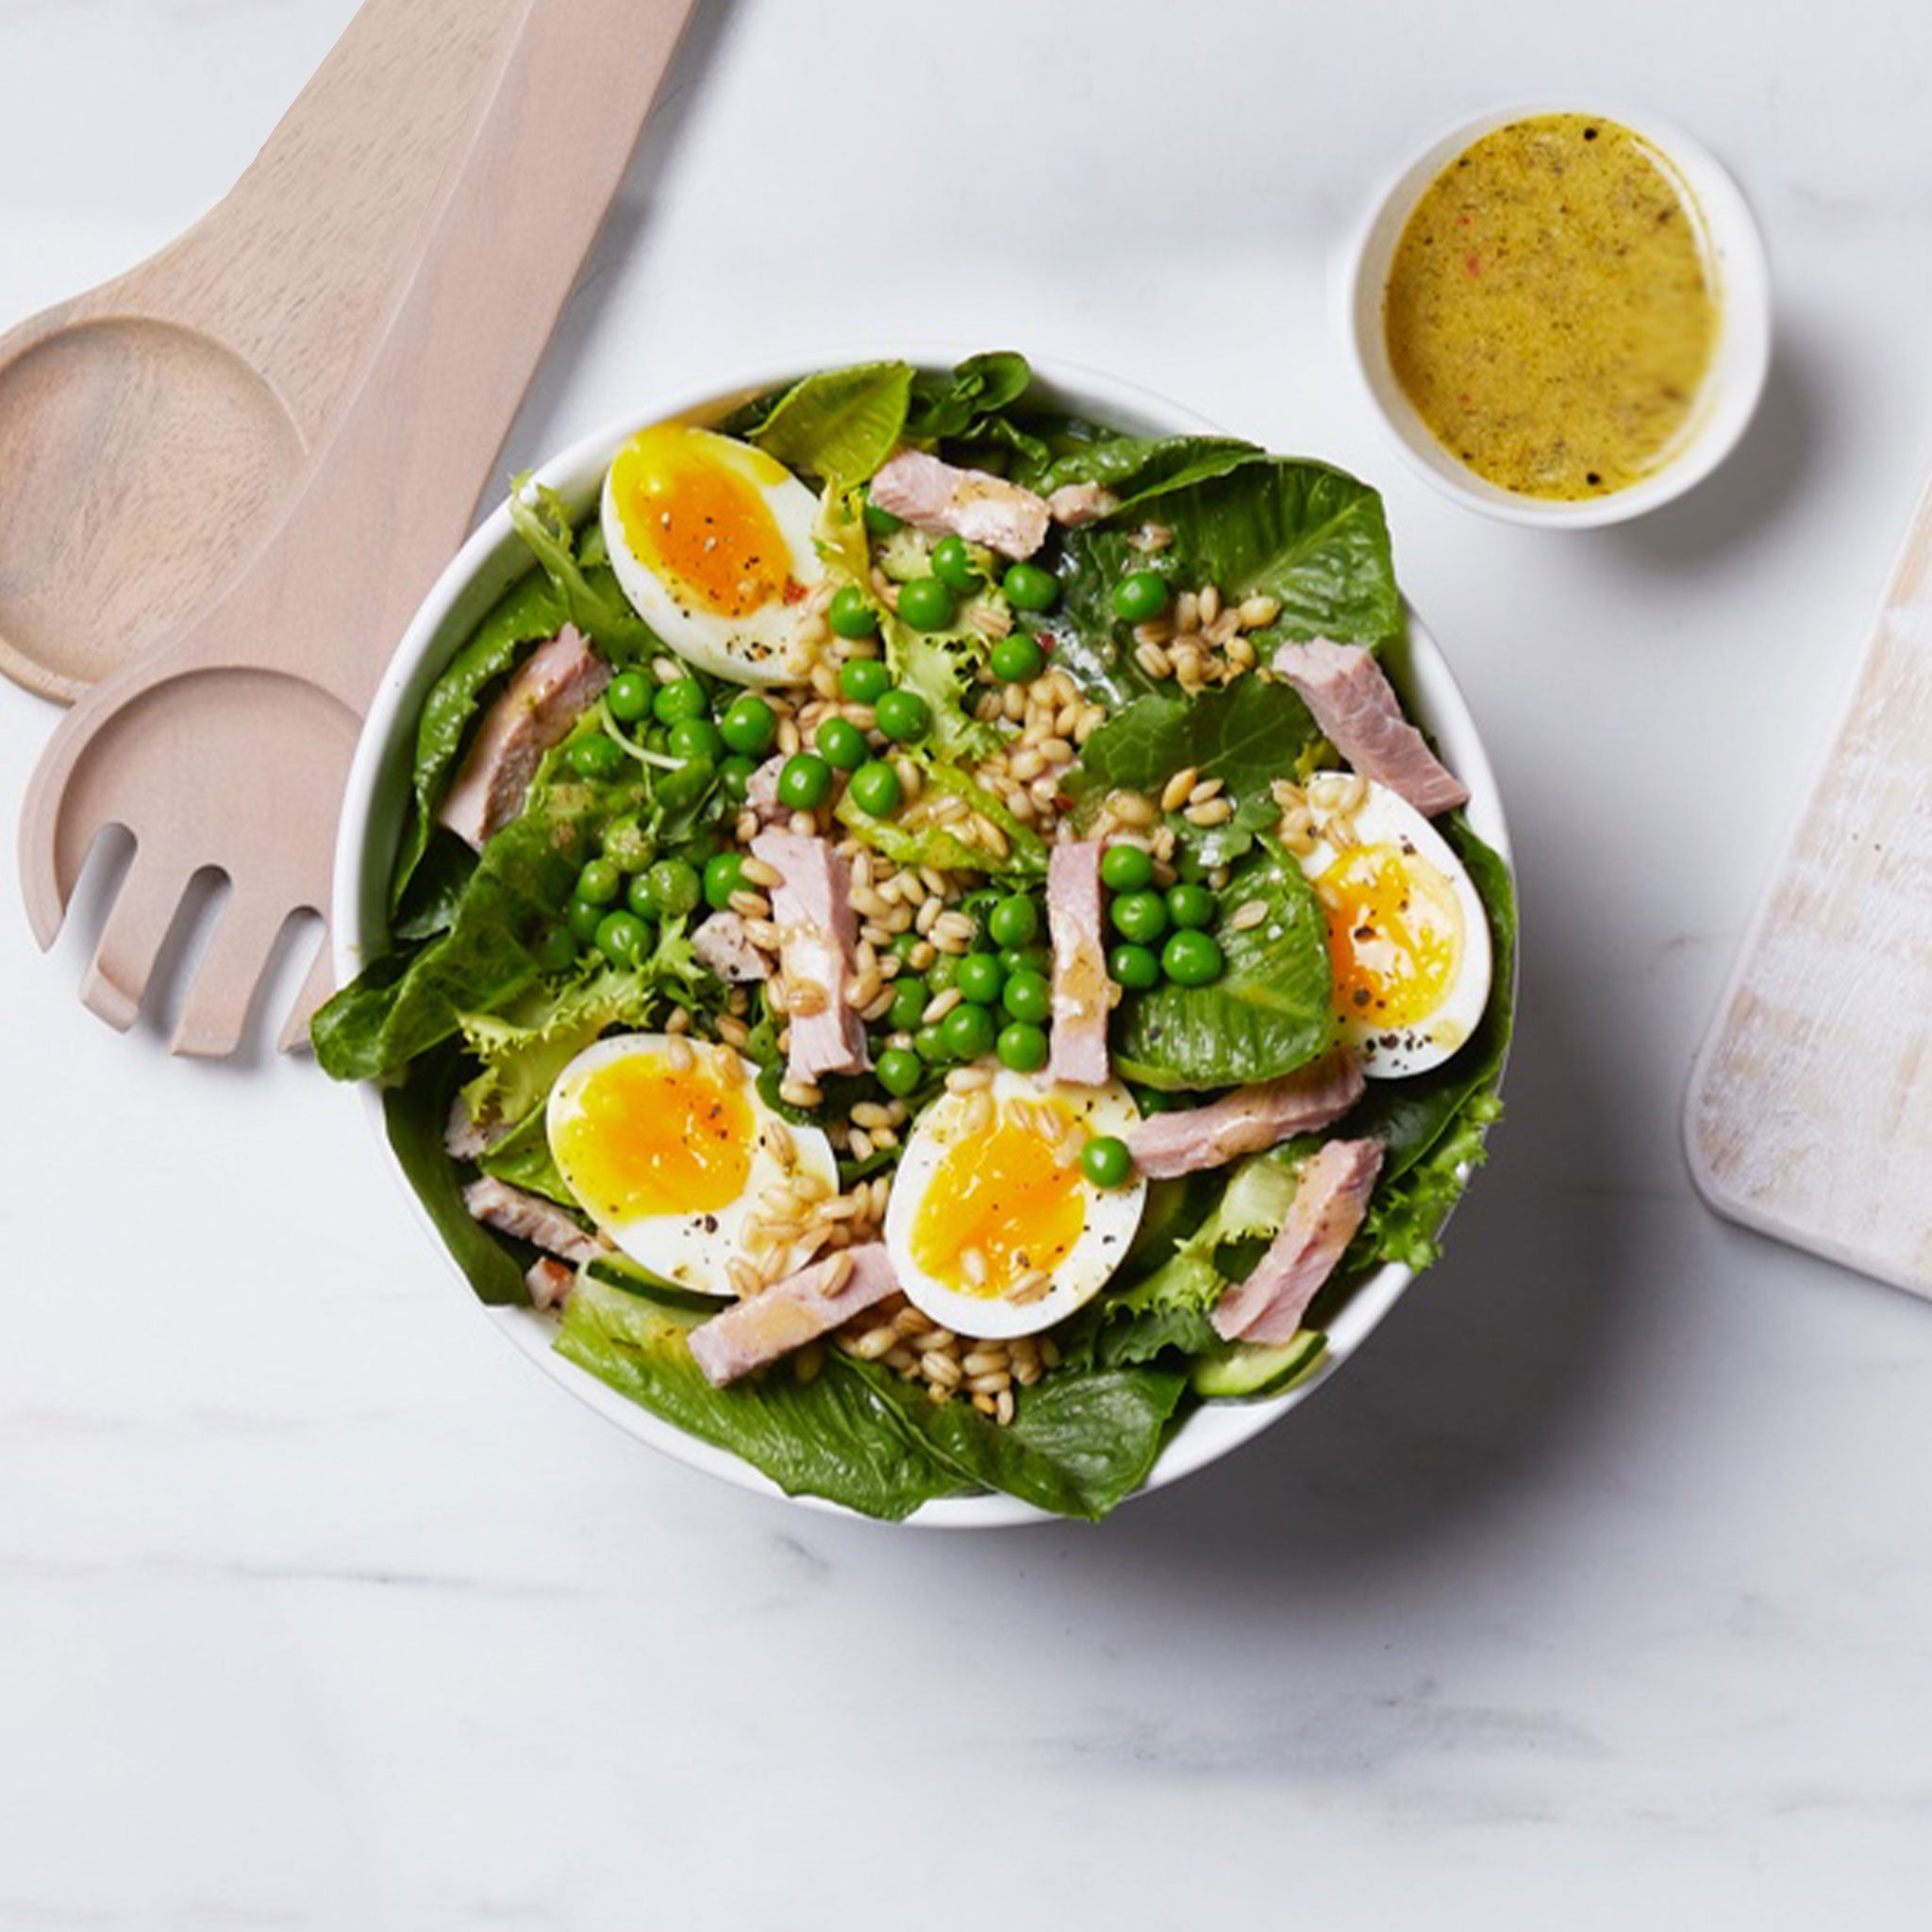 Spring Greens with Berkshire Ham, Peas and Eggs with Lemon Dijon Dressing